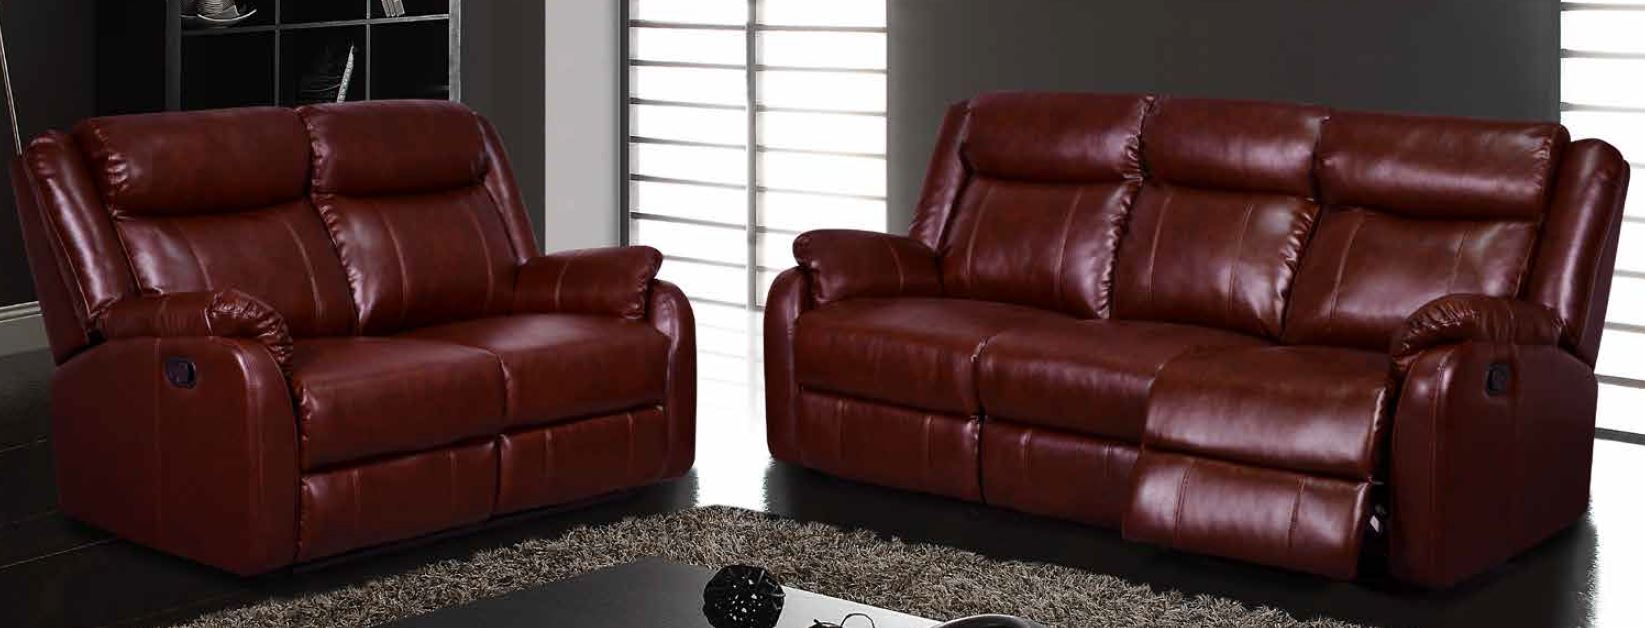 abbyson leather sofa reviews childrens target burgundy and loveseat modern ...